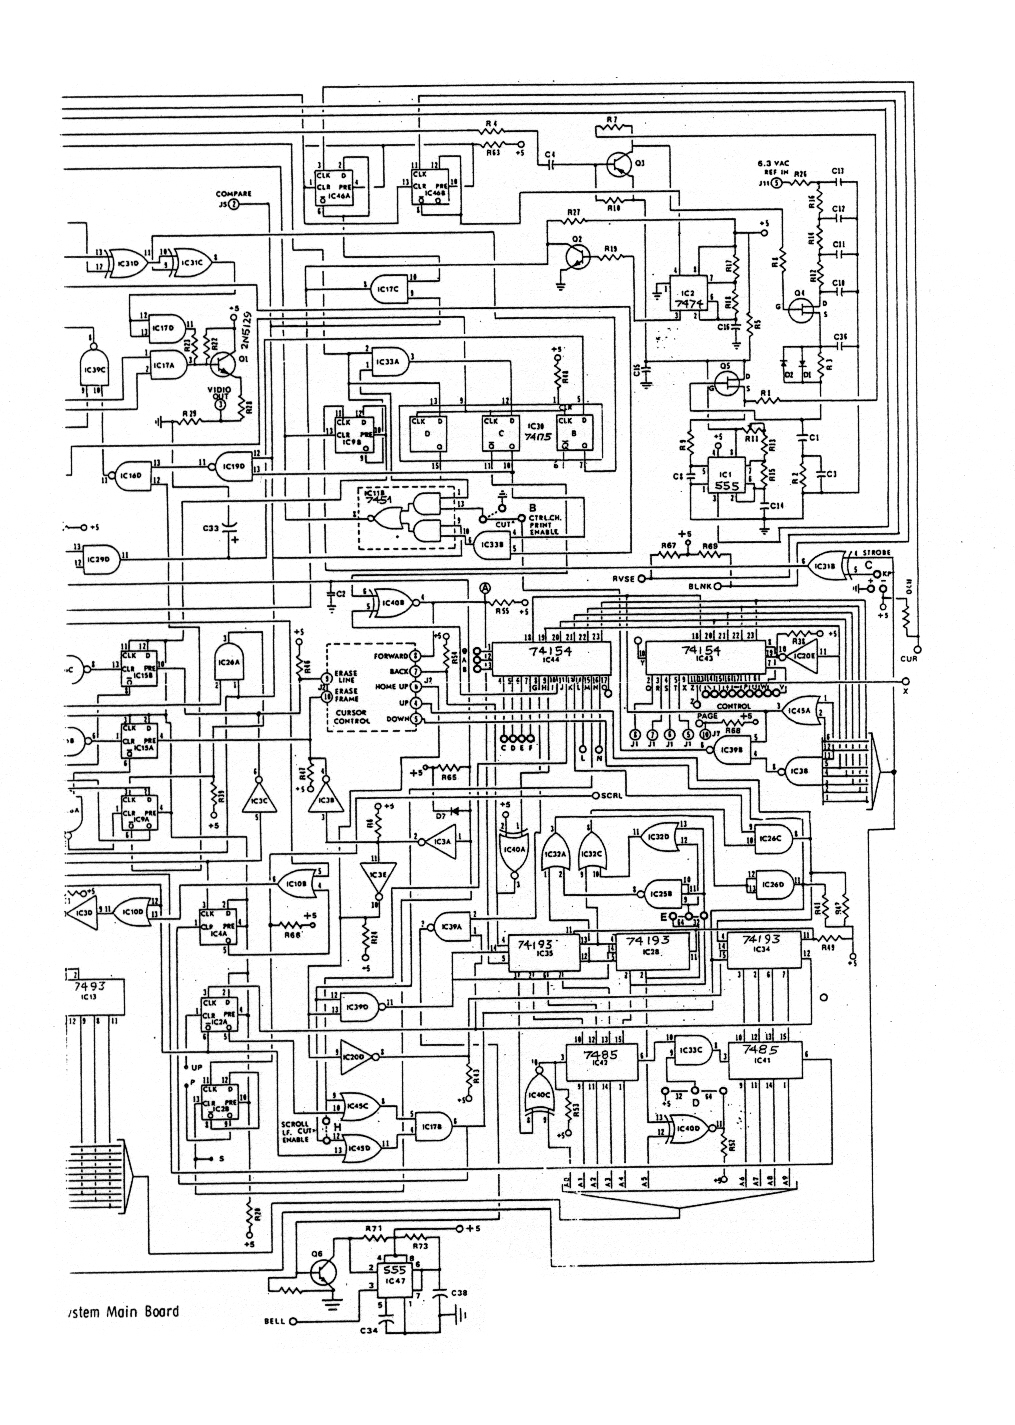 schema2 international 4700 wiring diagram dolgular com International Truck Electrical Diagrams at soozxer.org